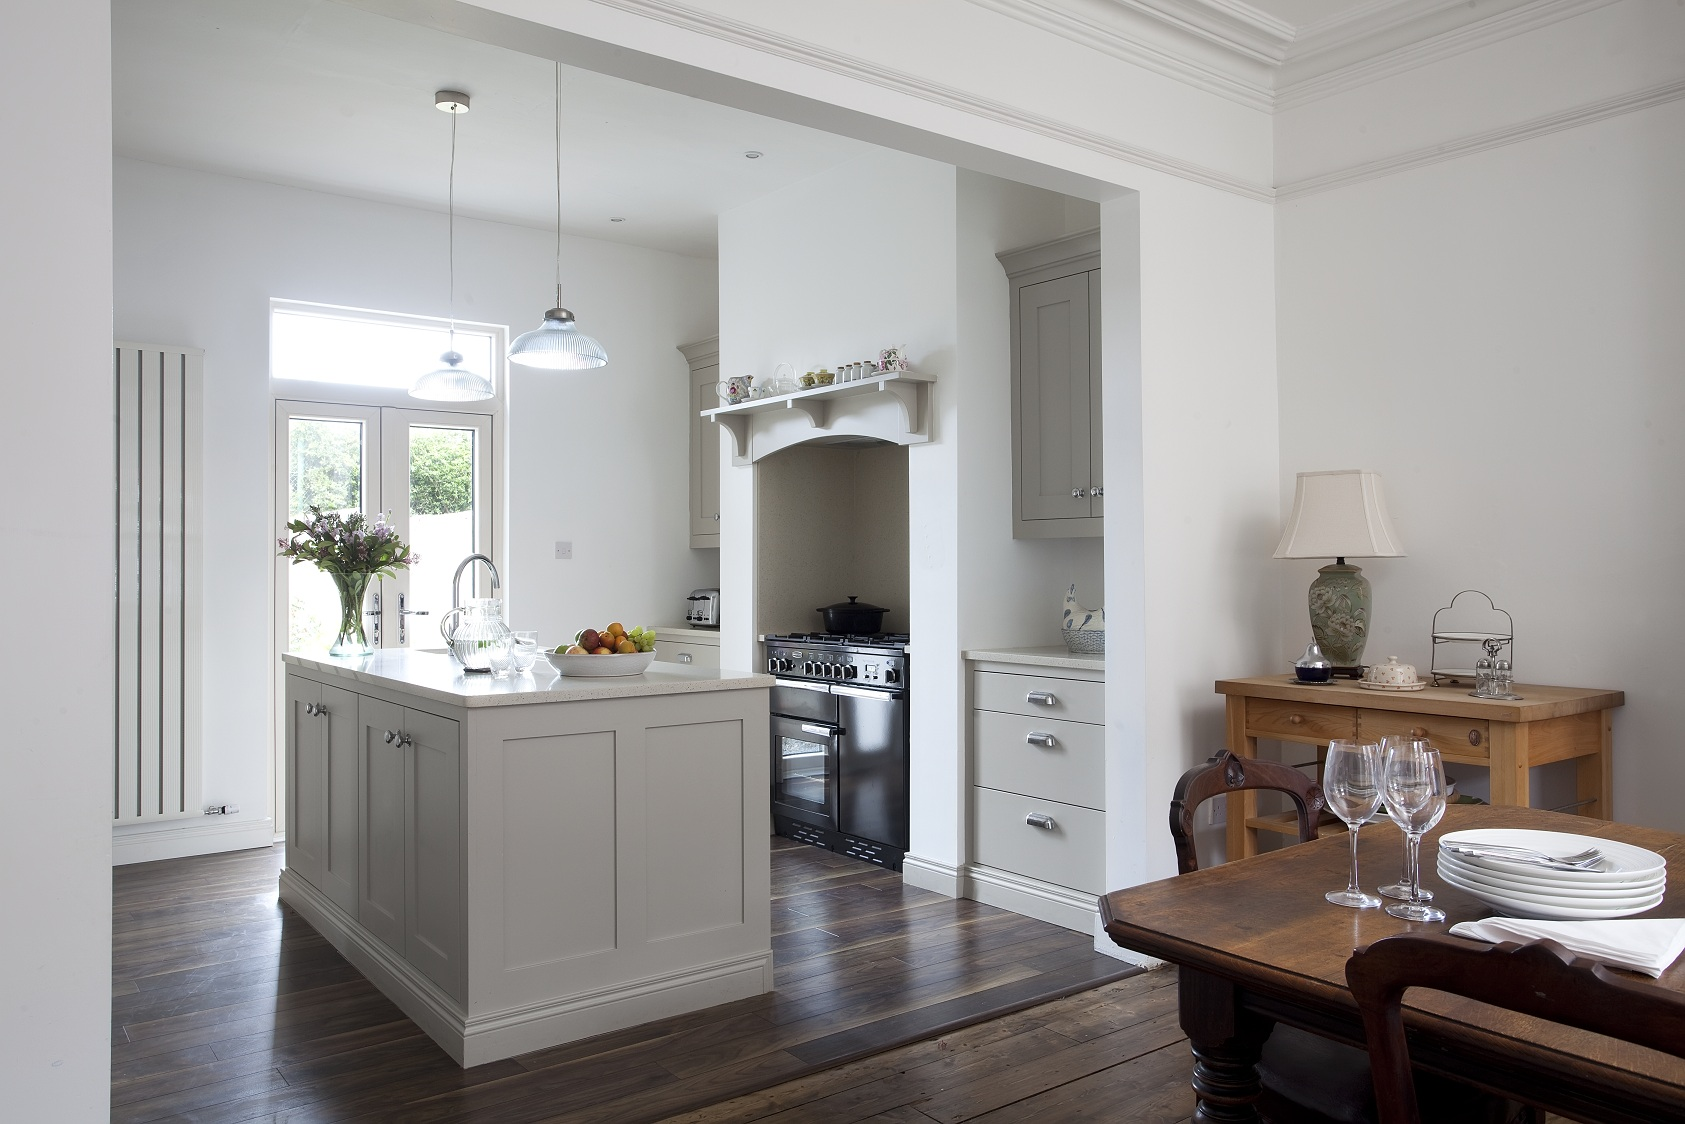 kitchen designer jobs ireland